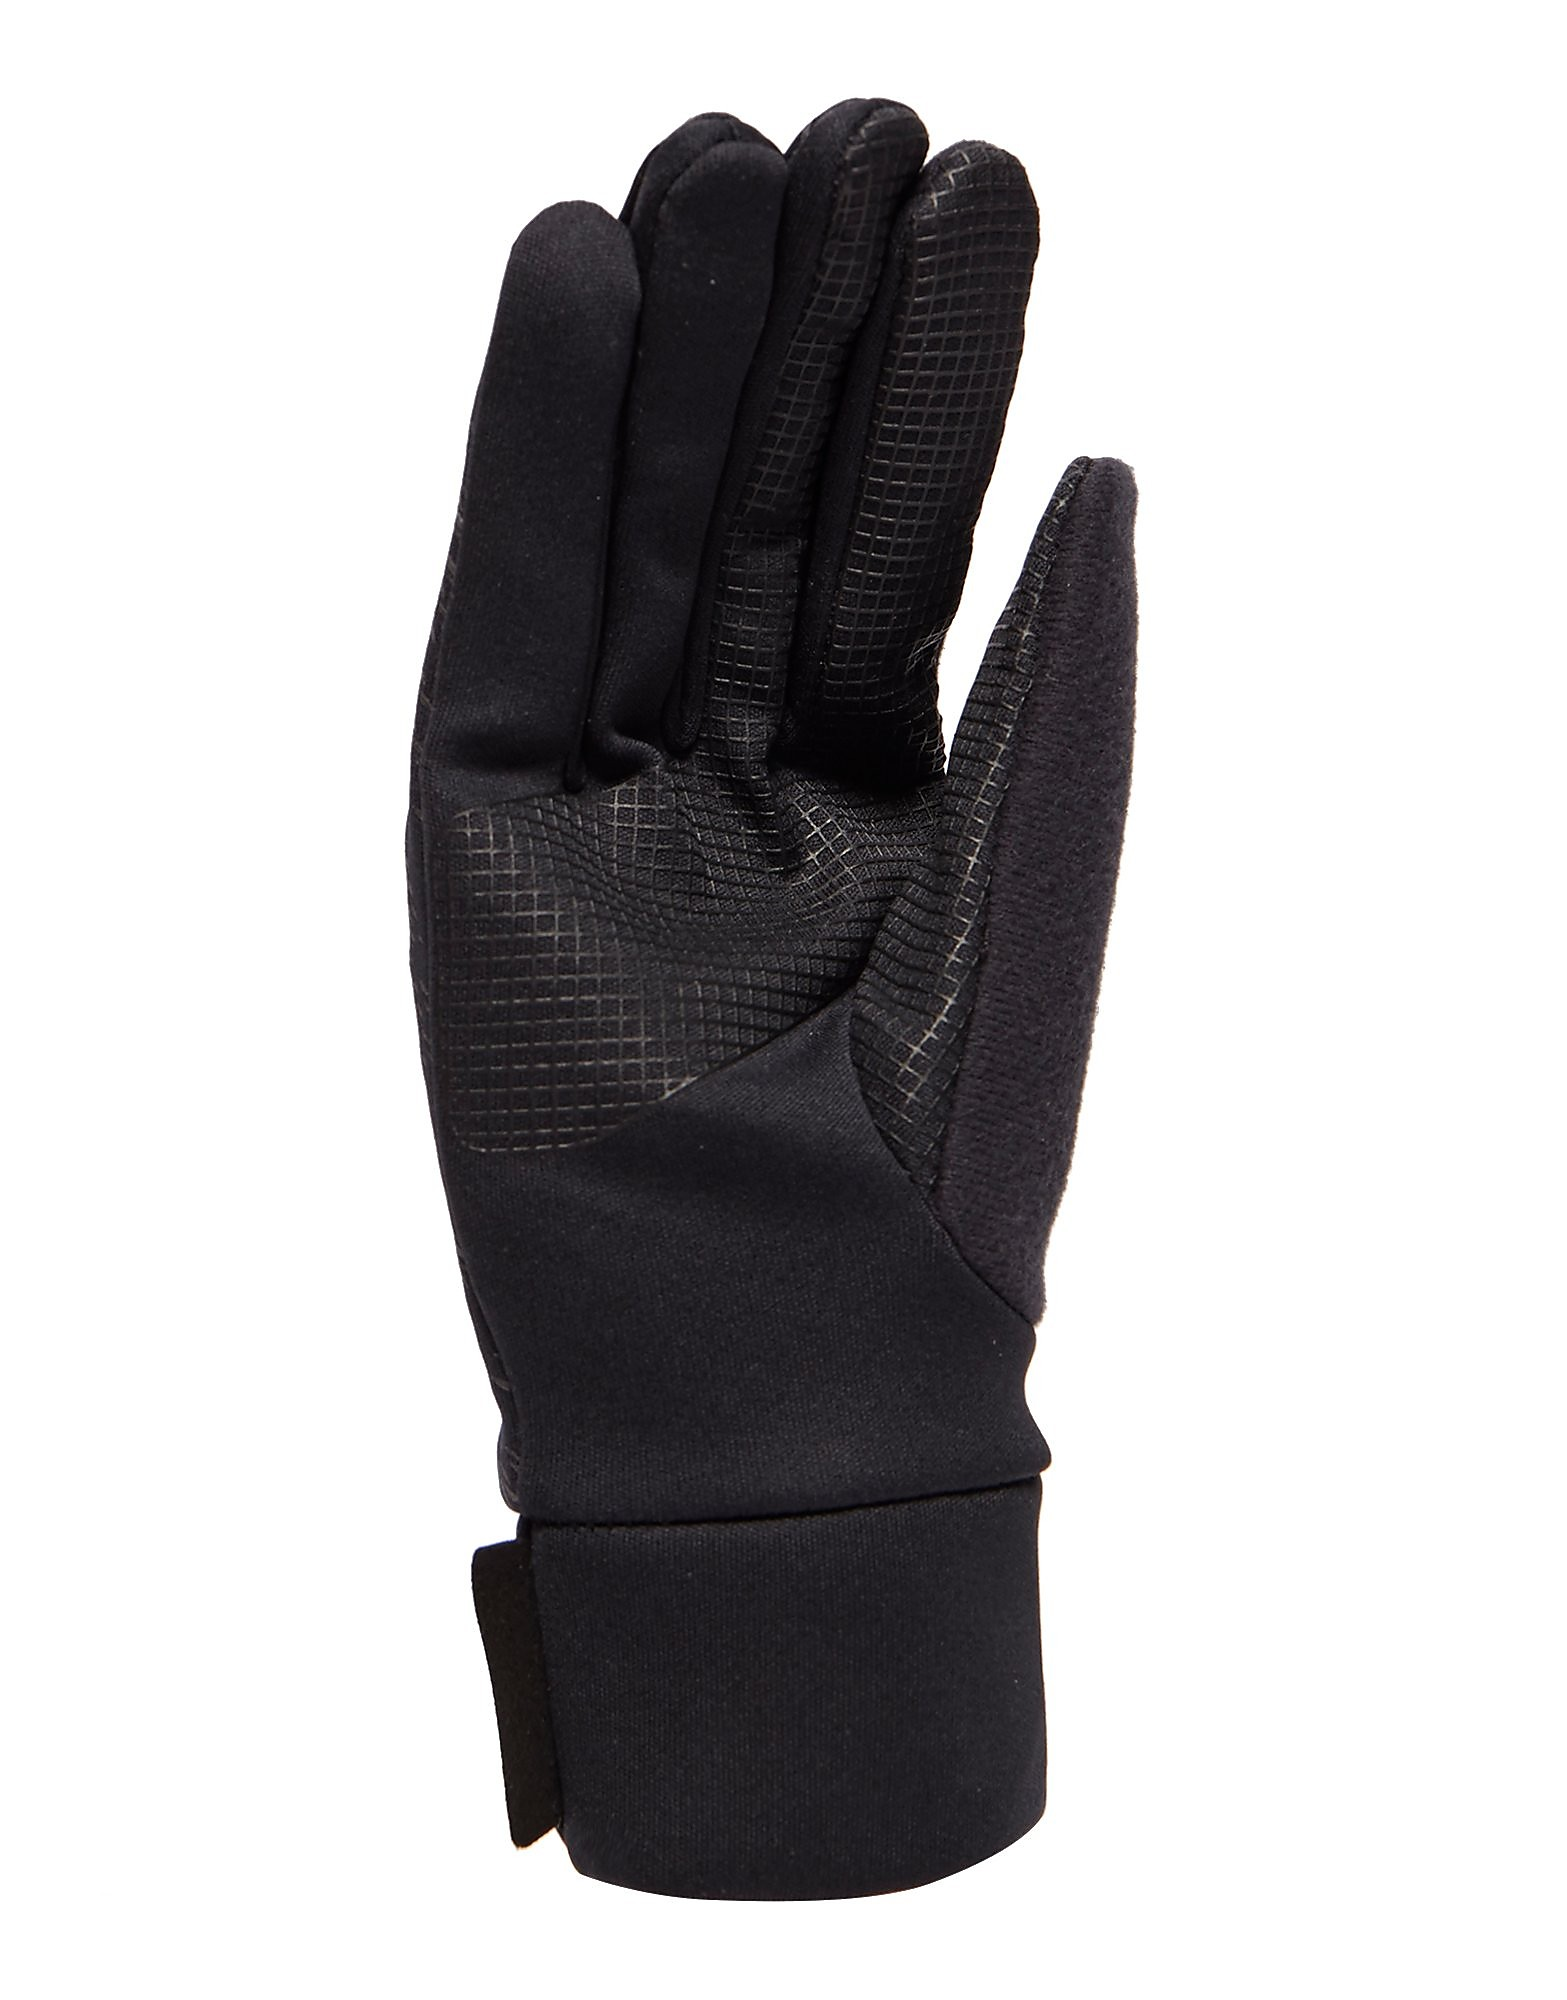 Under Armour NoBreaks ColdGear Infrared Liner Gloves